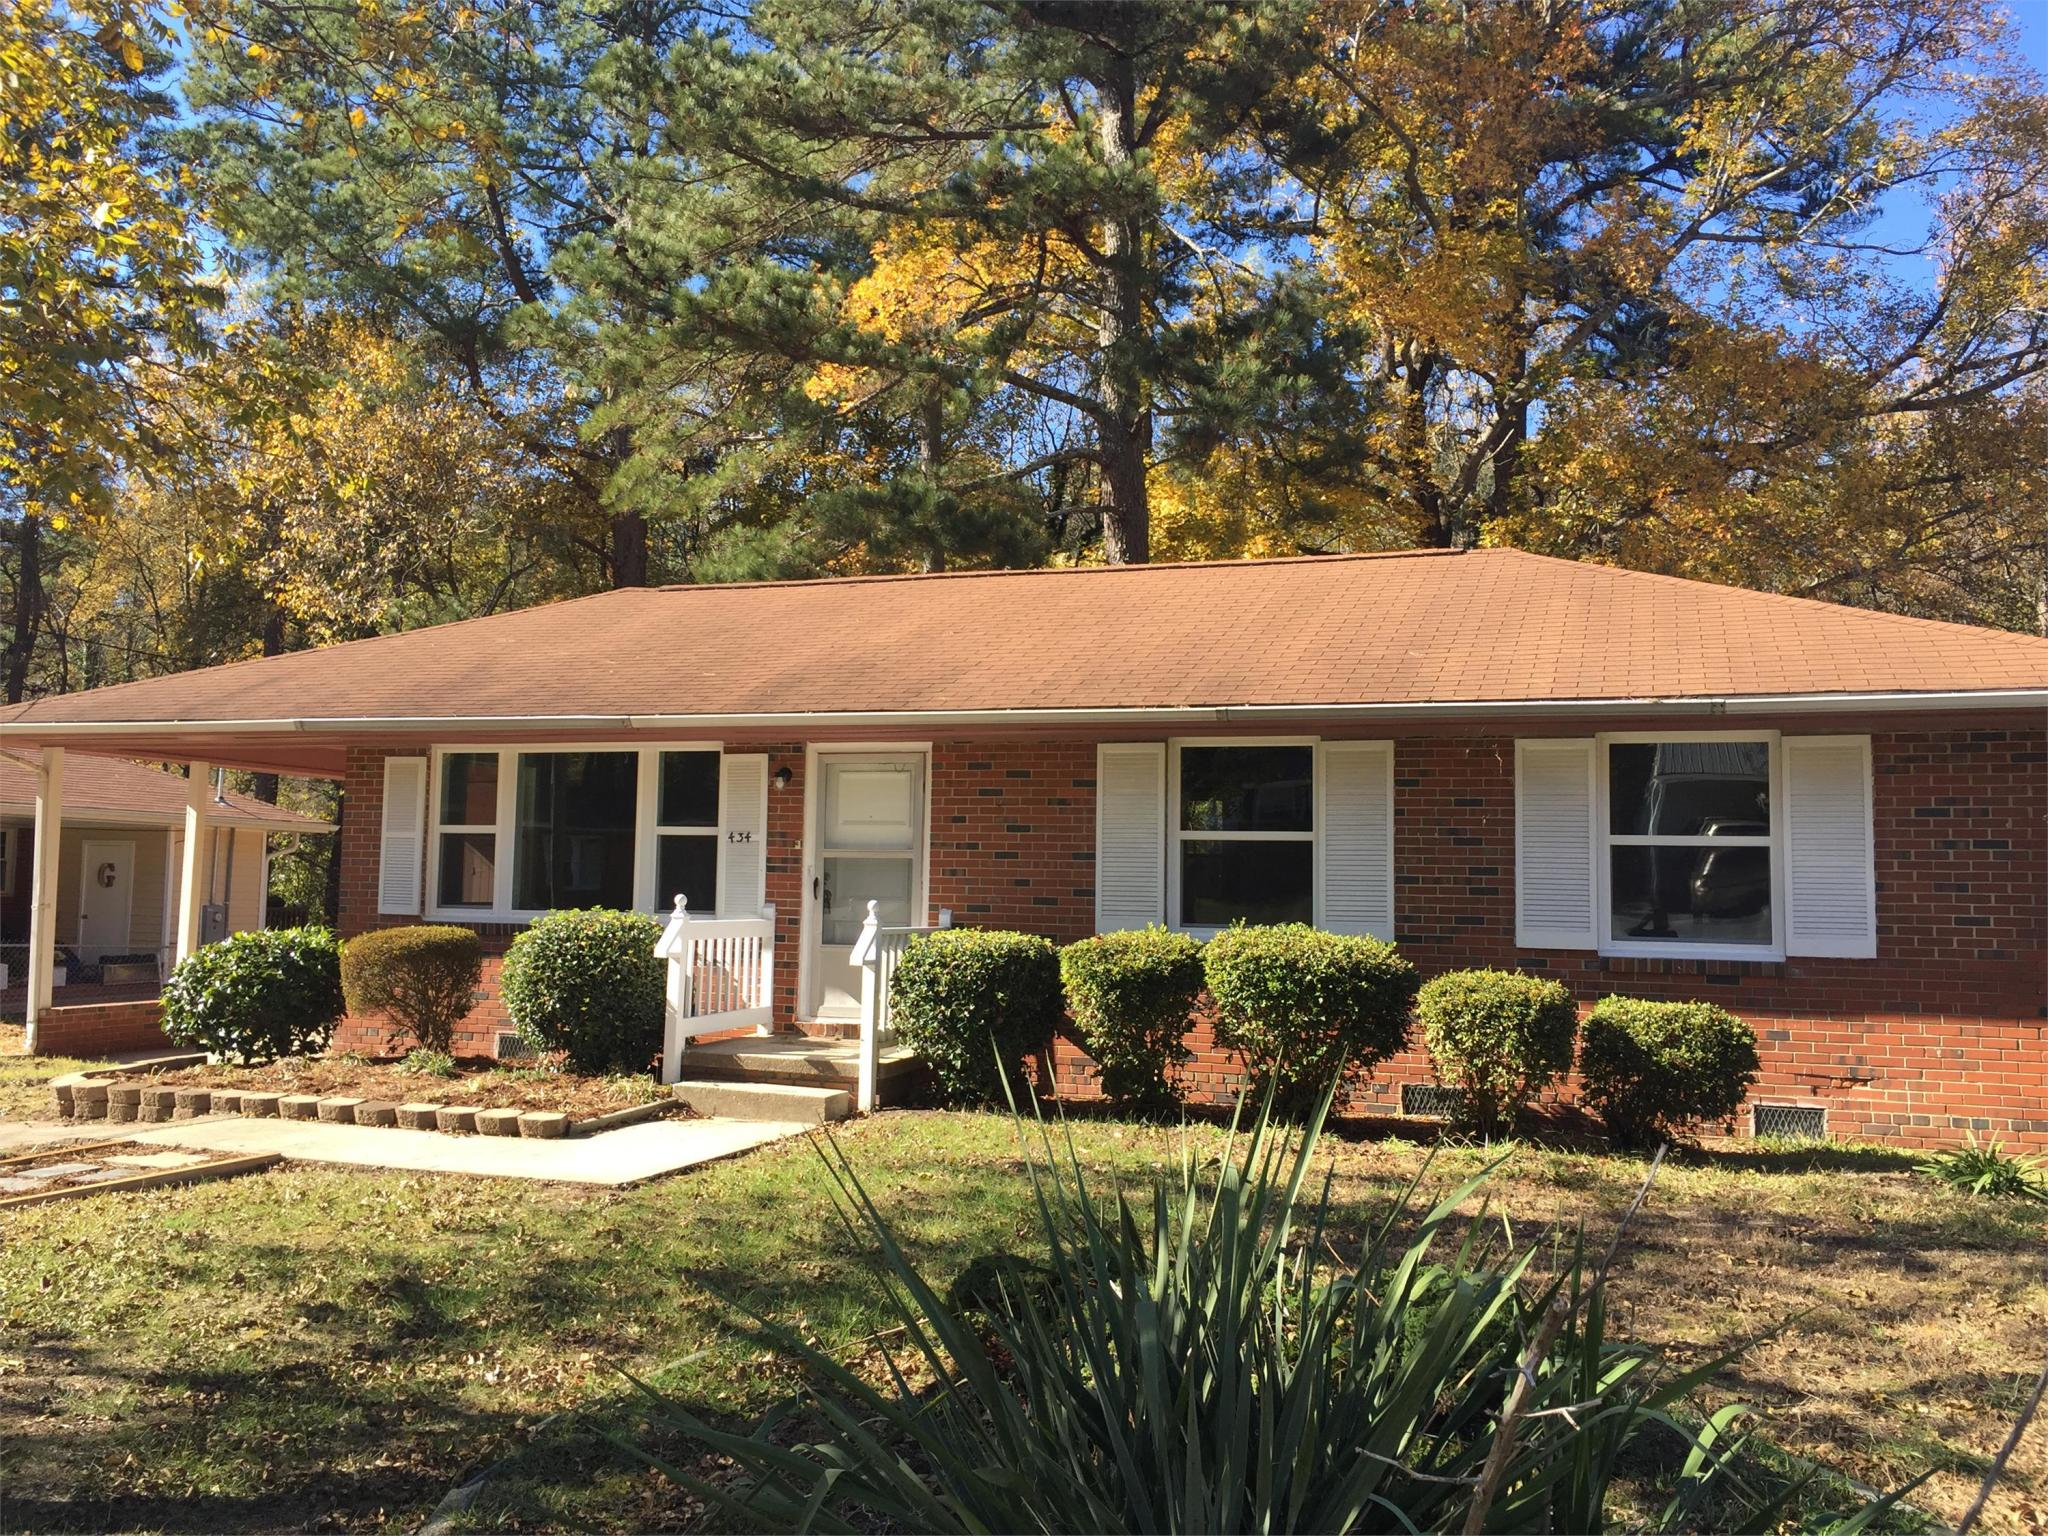 434 Glenbrook Dr For Rent - Raleigh, NC | Trulia